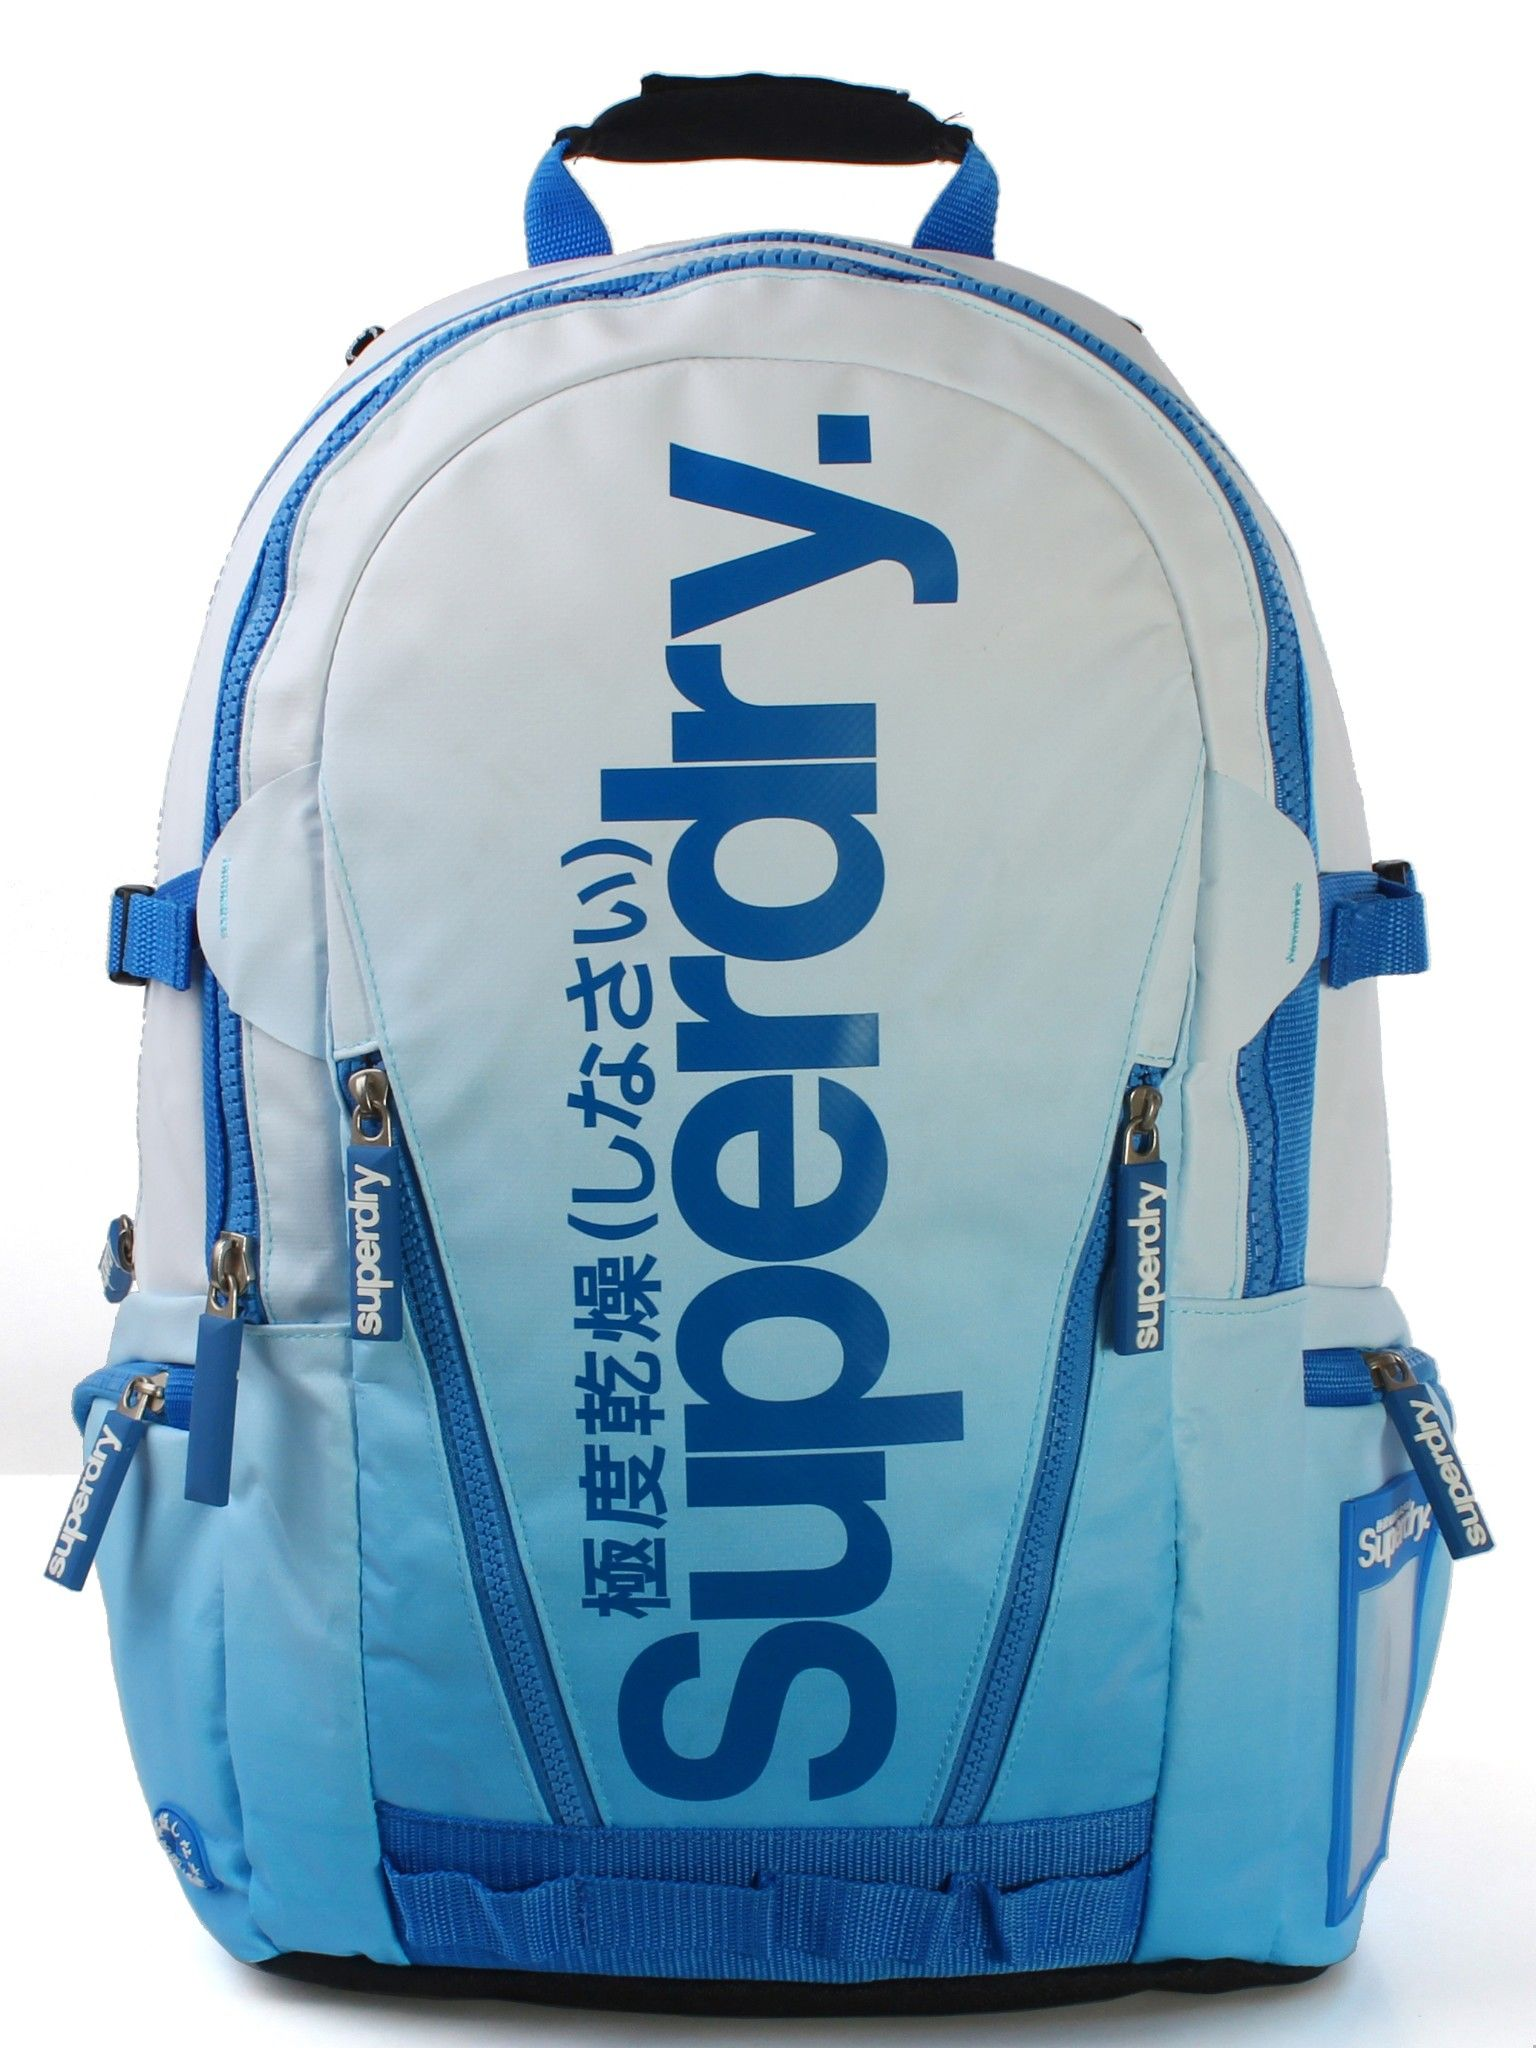 Superdry - Dip Tarp Backpack สีฟ้า (Dip Blue)